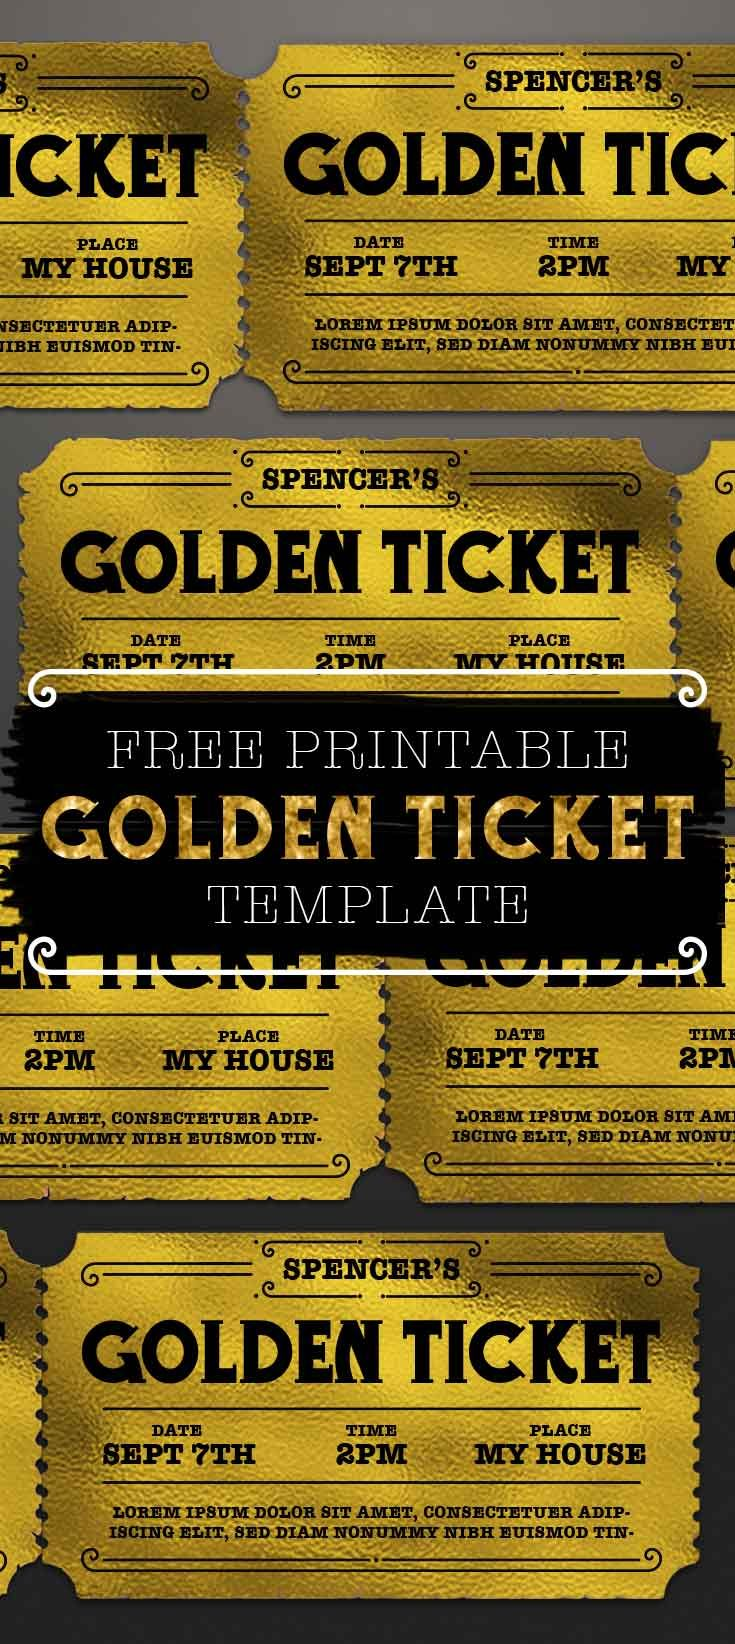 image relating to Golden Ticket Printable identify Customizable Golden Ticket Template university backdrops